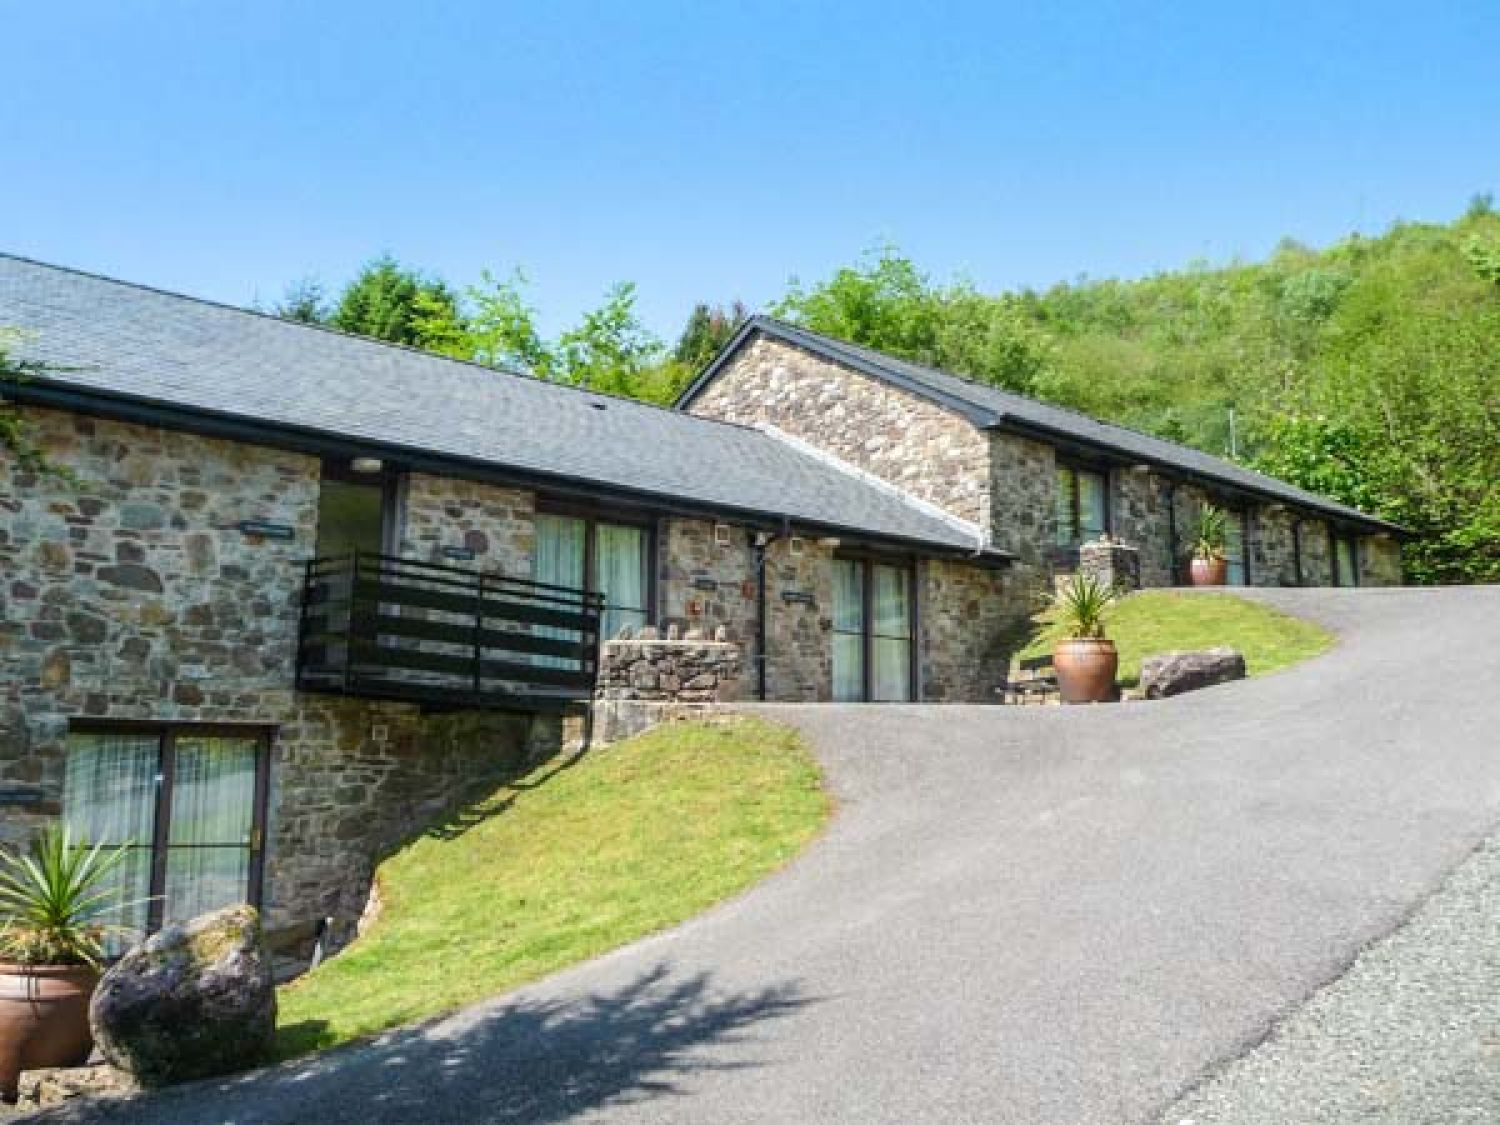 Brecon Cottages - Gwynedd - South Wales - 925415 - photo 1